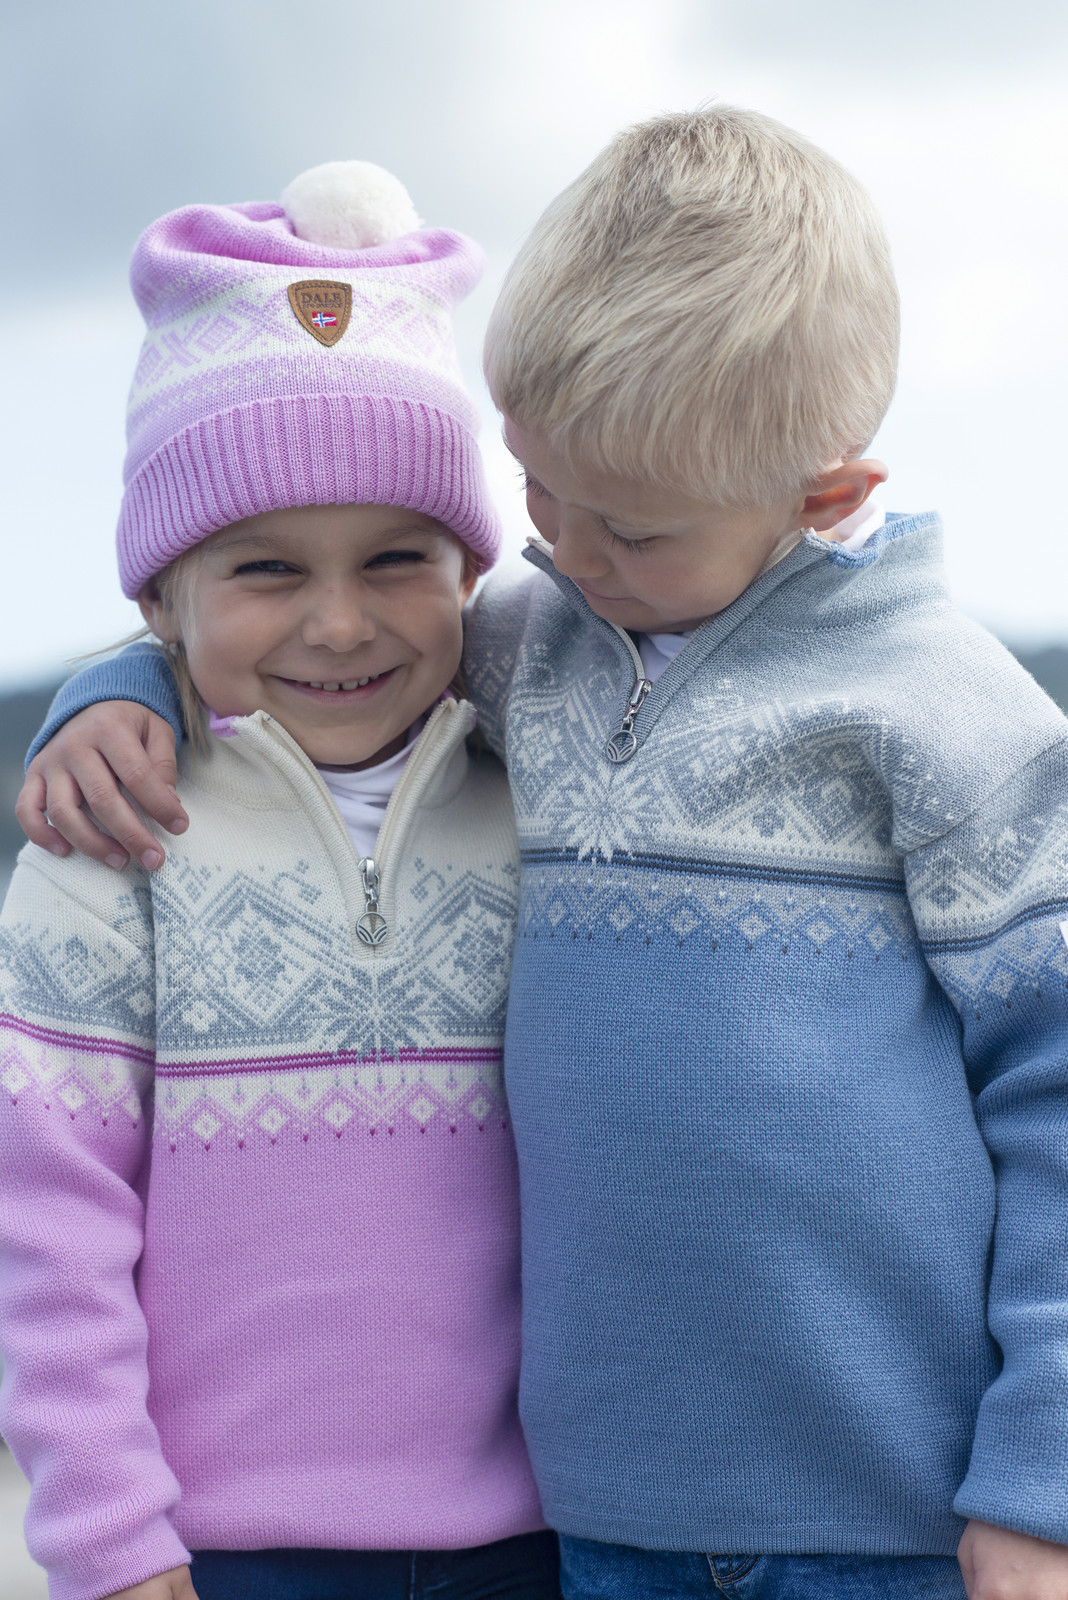 Children wearing Dale of Norway Moritz Sweaters in Pink Candy and Blue Shadow, 9150-Q and 9150-D